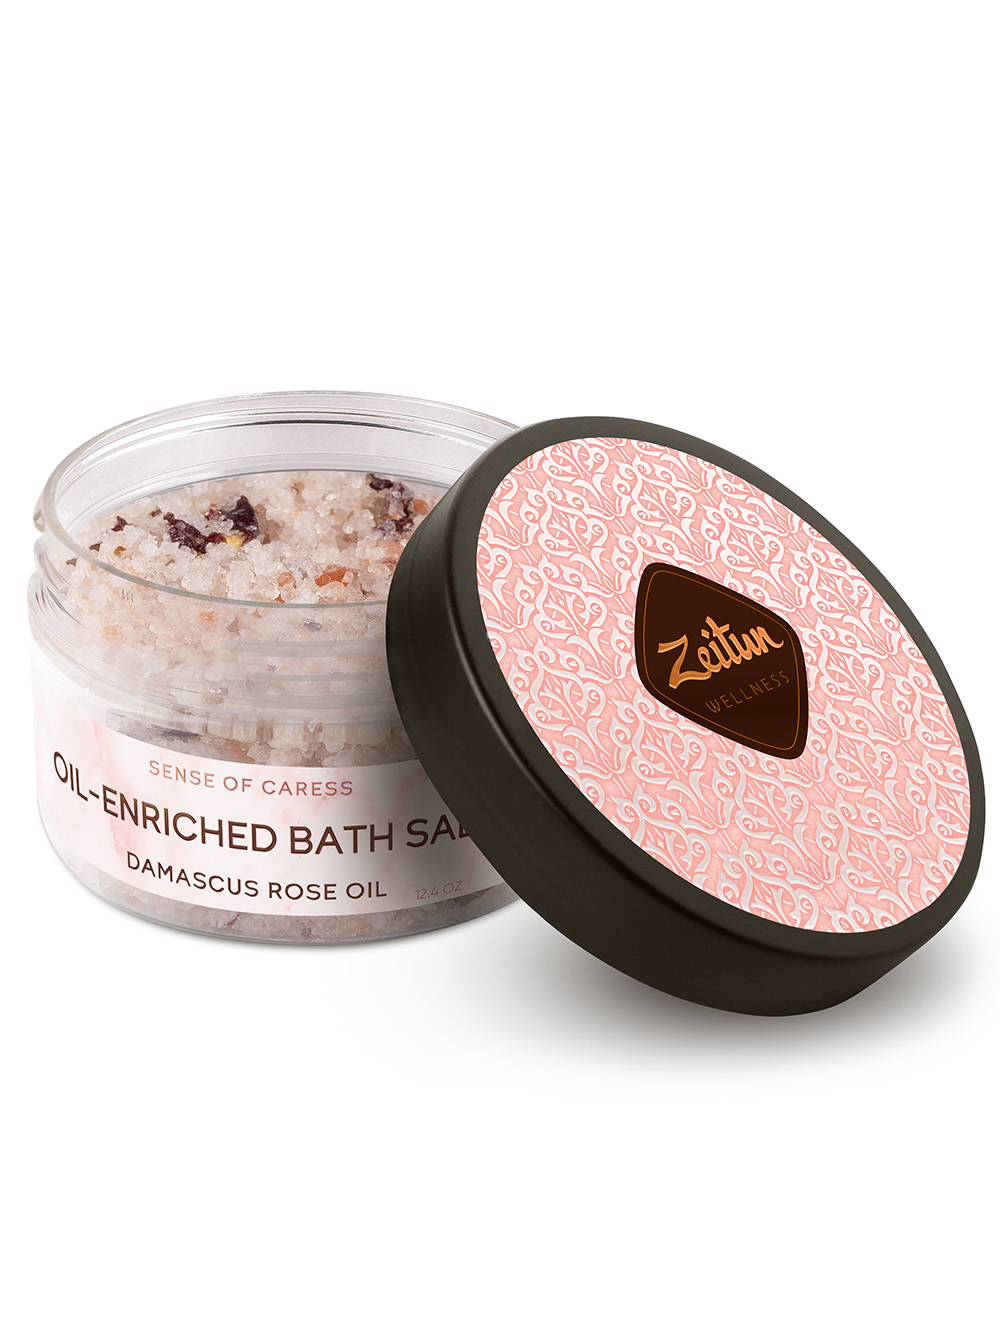 Sense of Caress Oil-enriched Bath salt with Damascus Rose and Peach oil